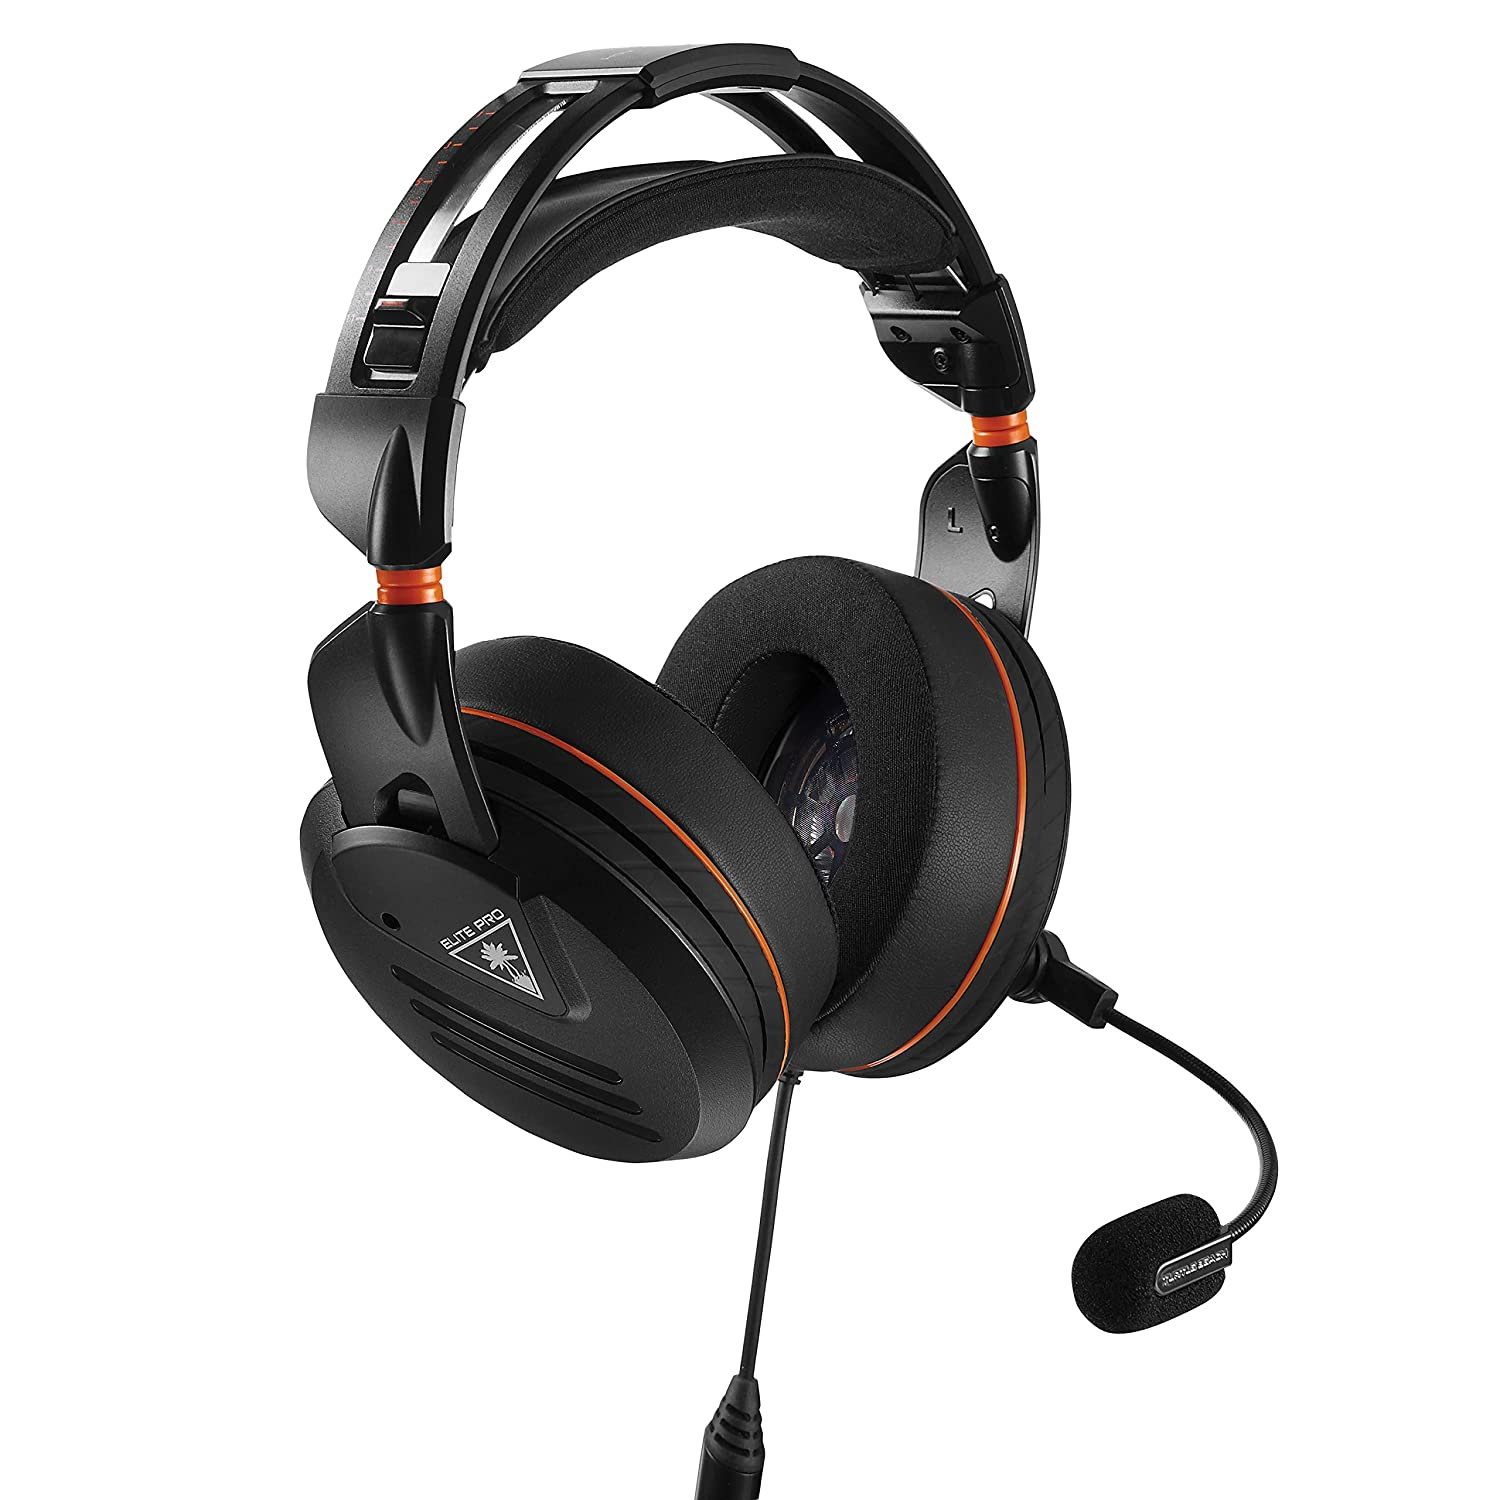 Turtle Beach - Elite Pro Tactical Audio Controller - DTS Headphone:X 7.1 Surround Sound and Superhuman Hearing - Tournament Gaming - Xbox One, PS4 and PC - Tactical Audio Controller Edition Turtle Beach (via S2G) TBS-0111-01